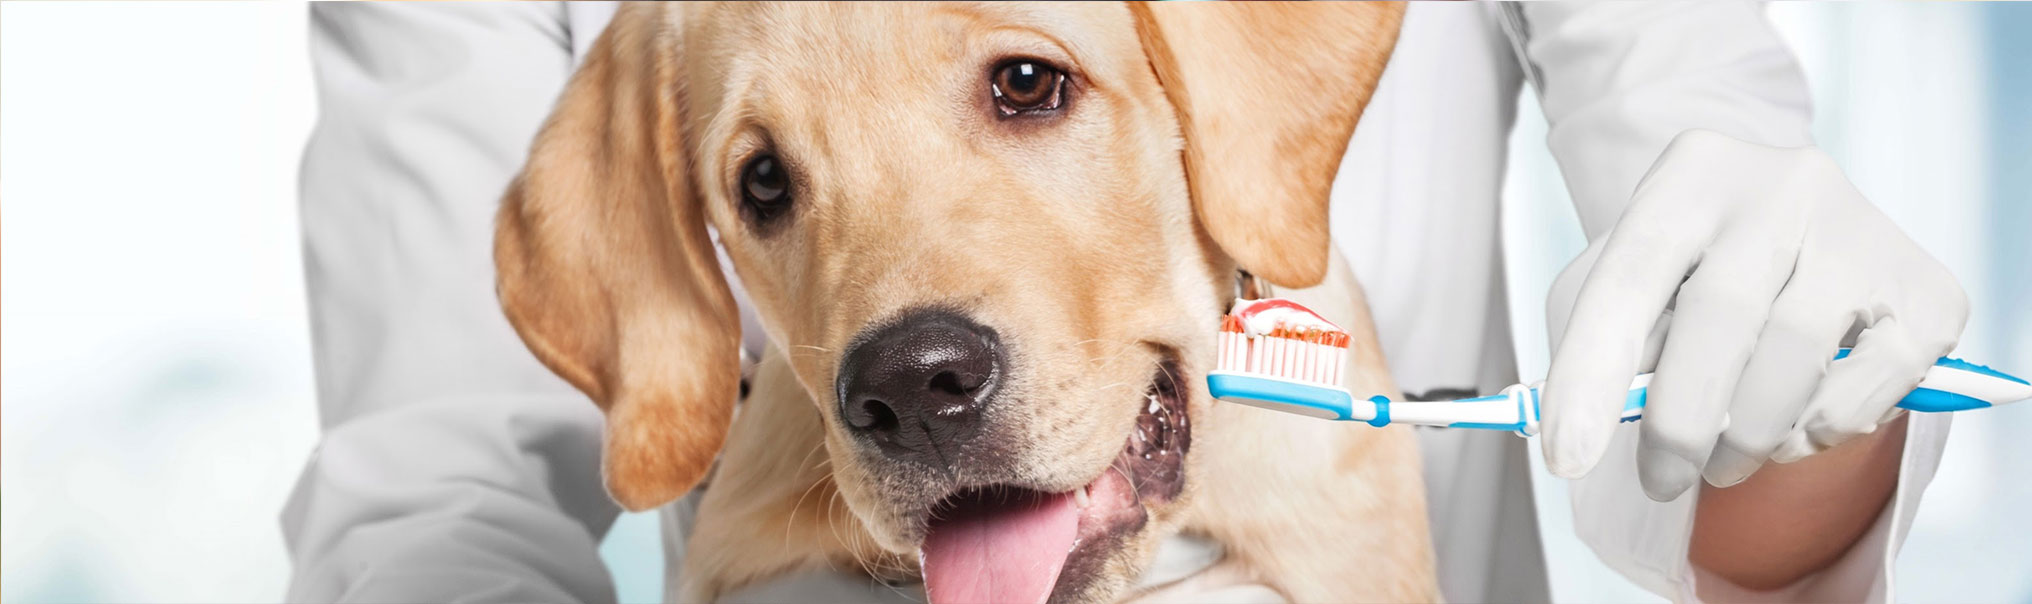 Veterinarian standing behind a dog and holding a toothbrush with toothpaste